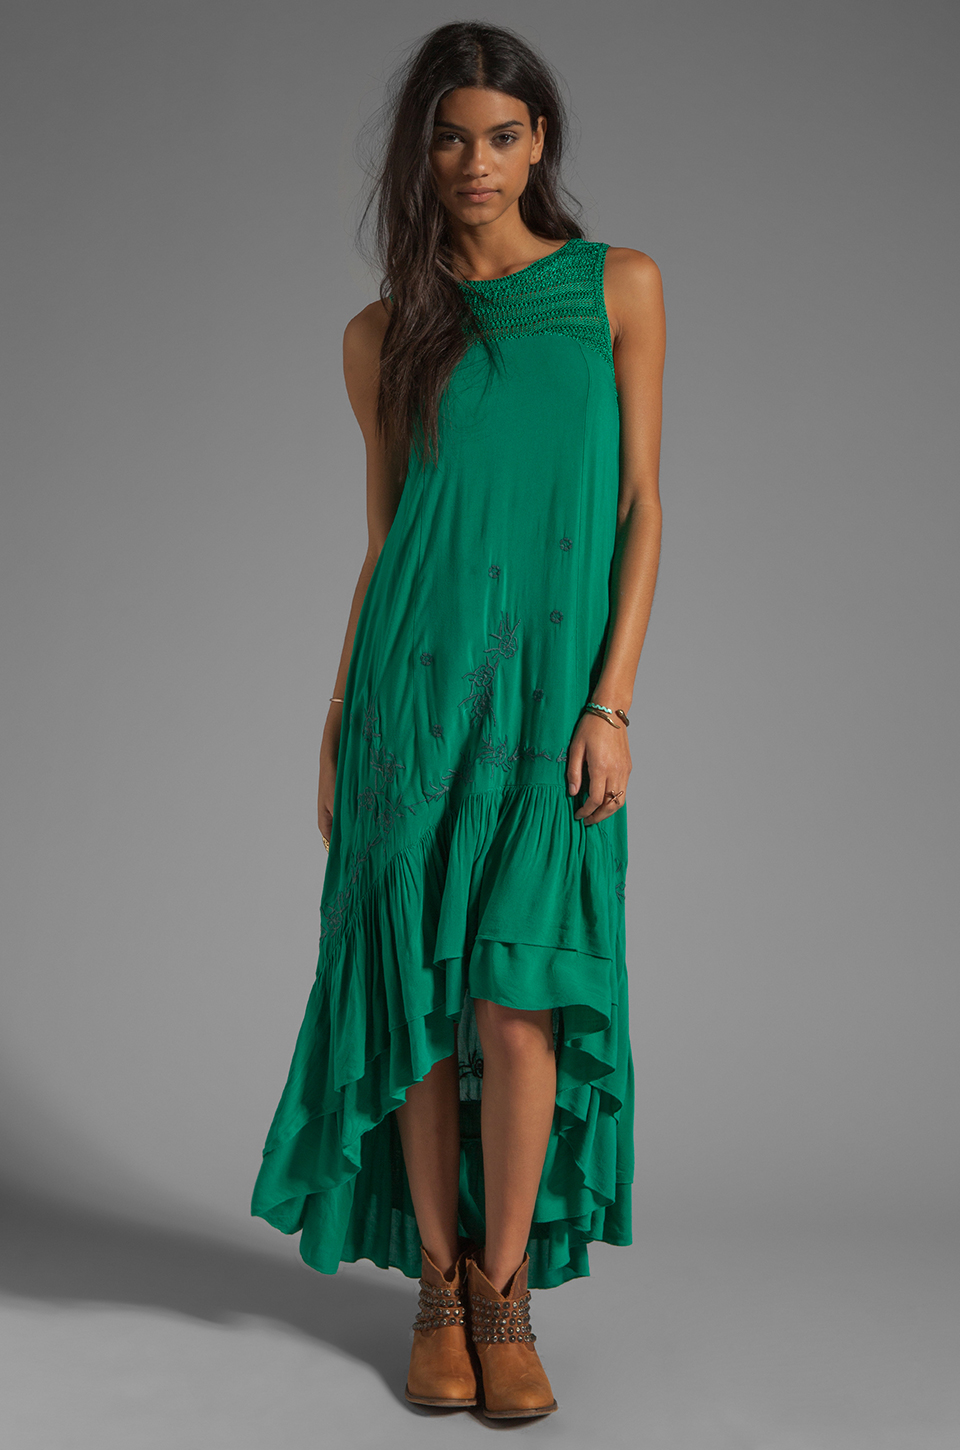 Free People Long Crochet Dress with Tiers in Emerald Combo